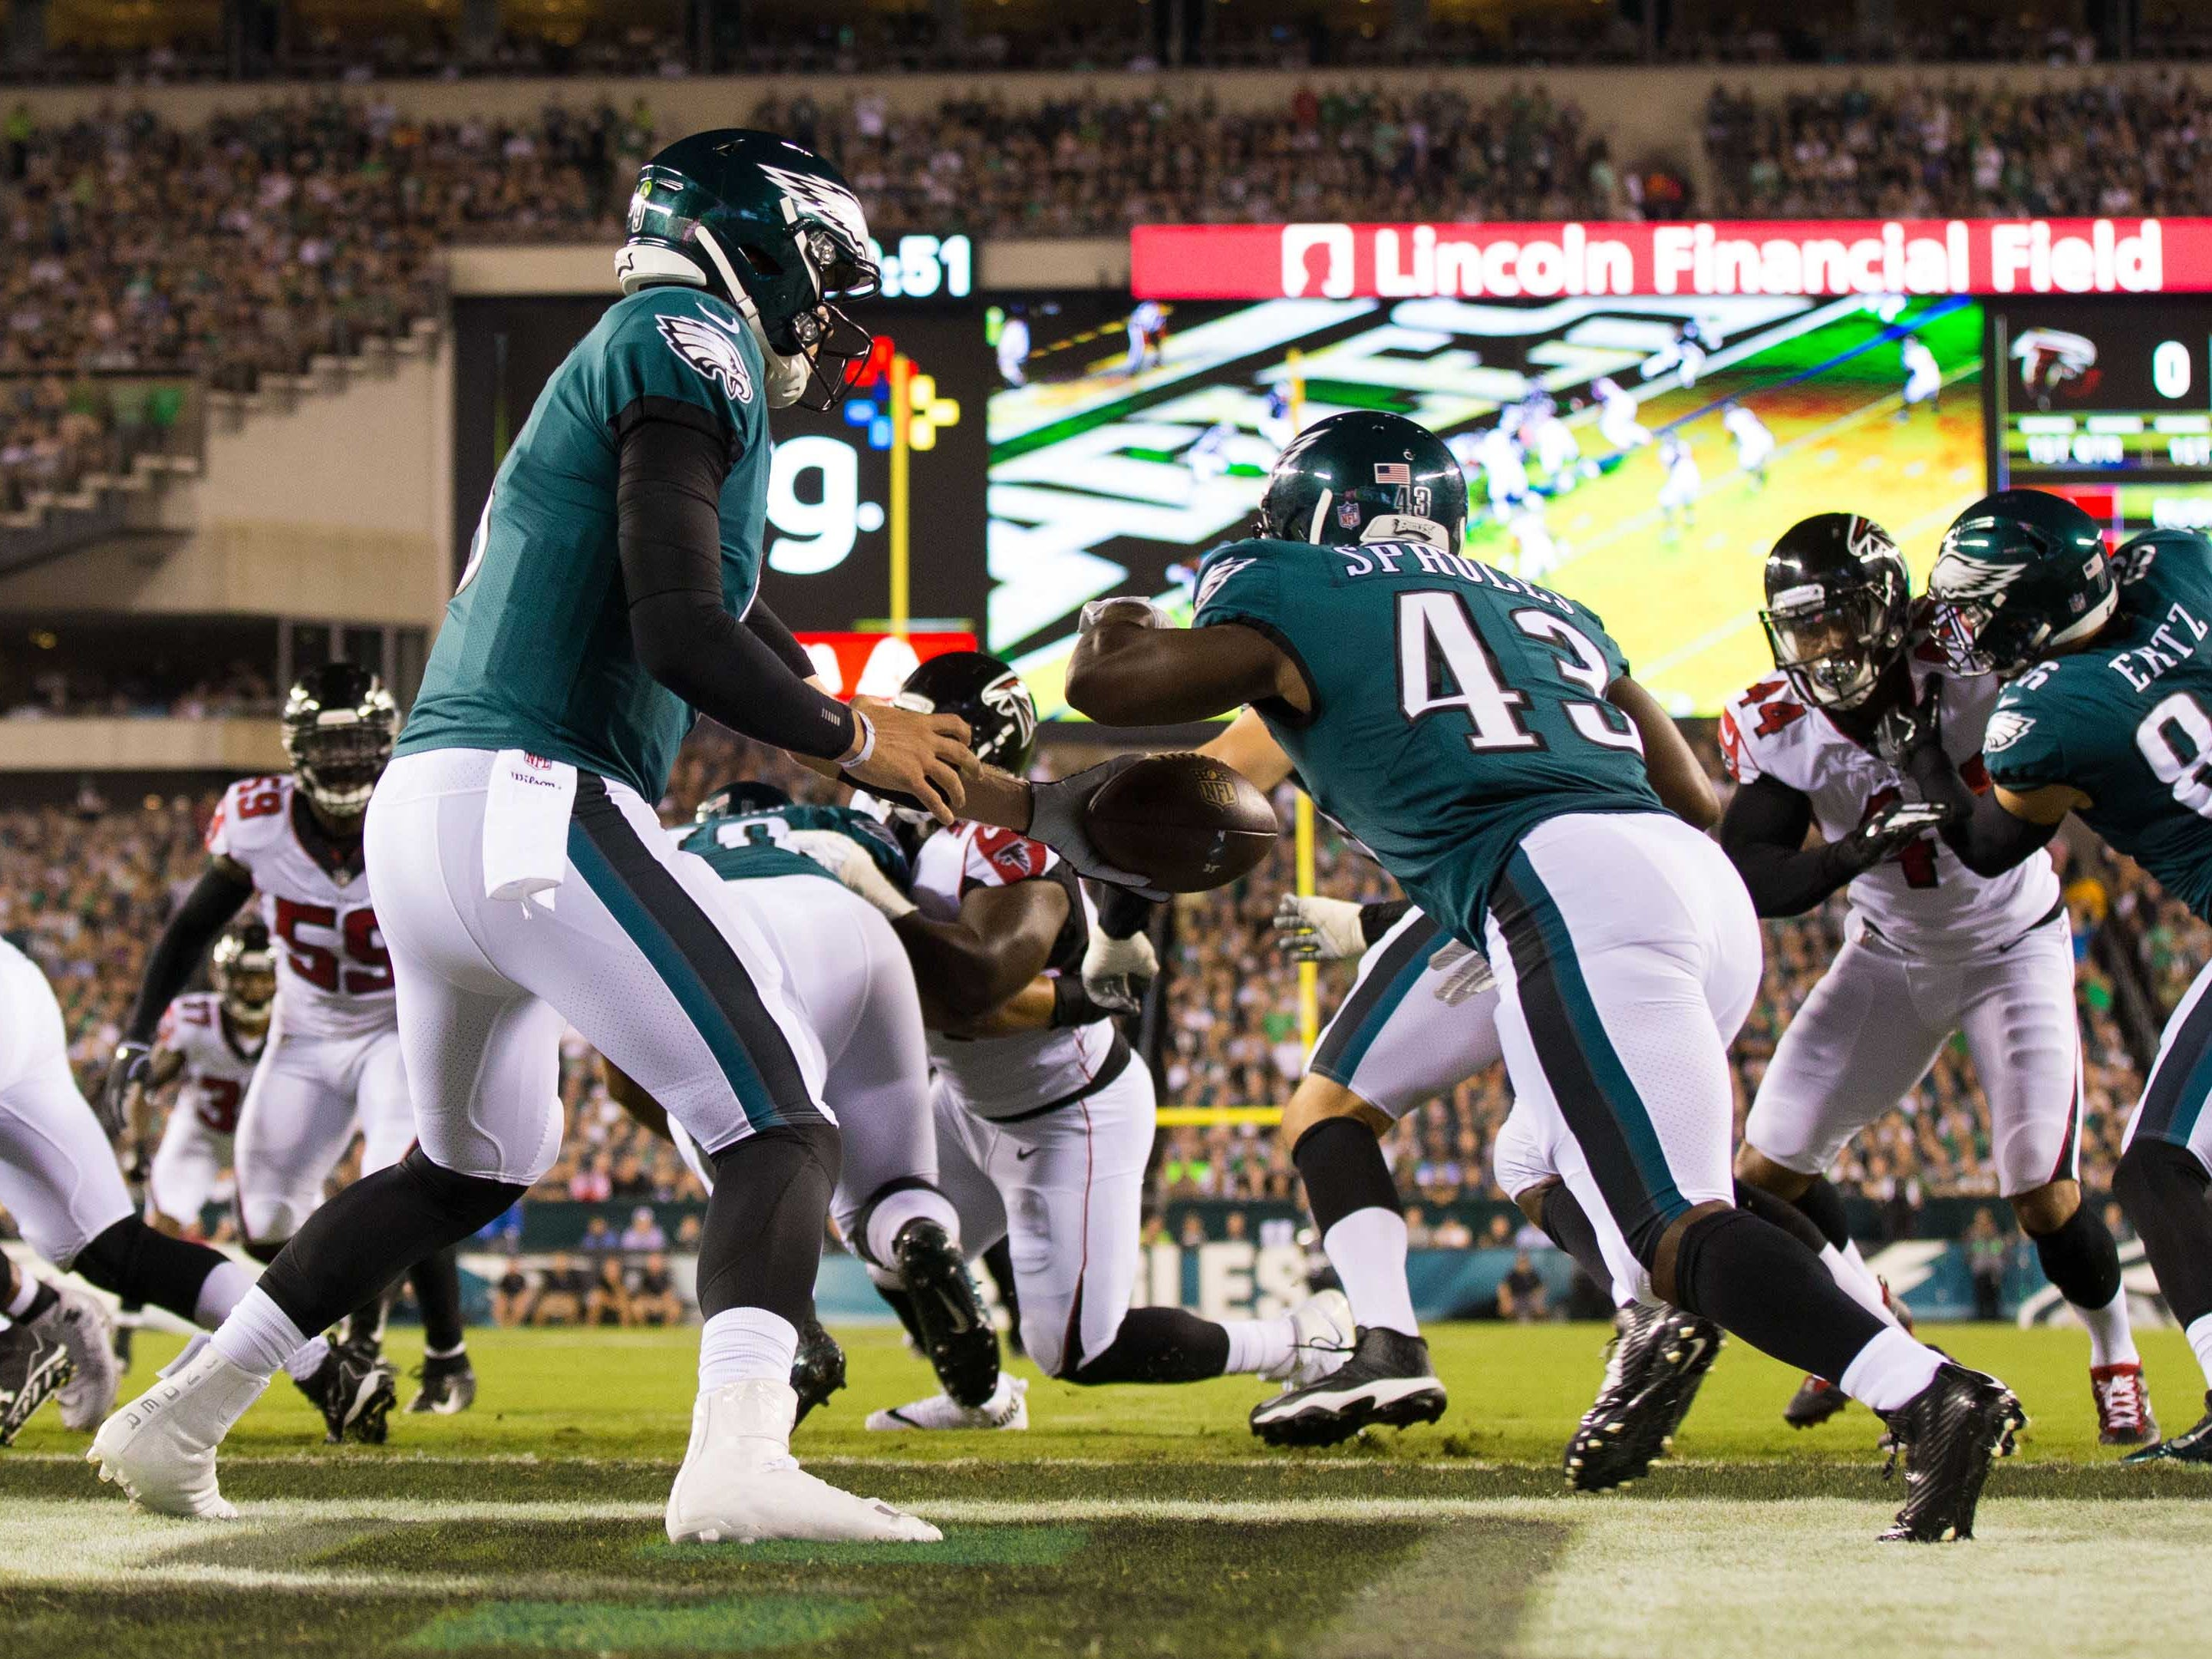 Philadelphia Eagles quarterback Nick Foles hands off to running back Darren Sproles during the first quarter against the Atlanta Falcons at Lincoln Financial Field.